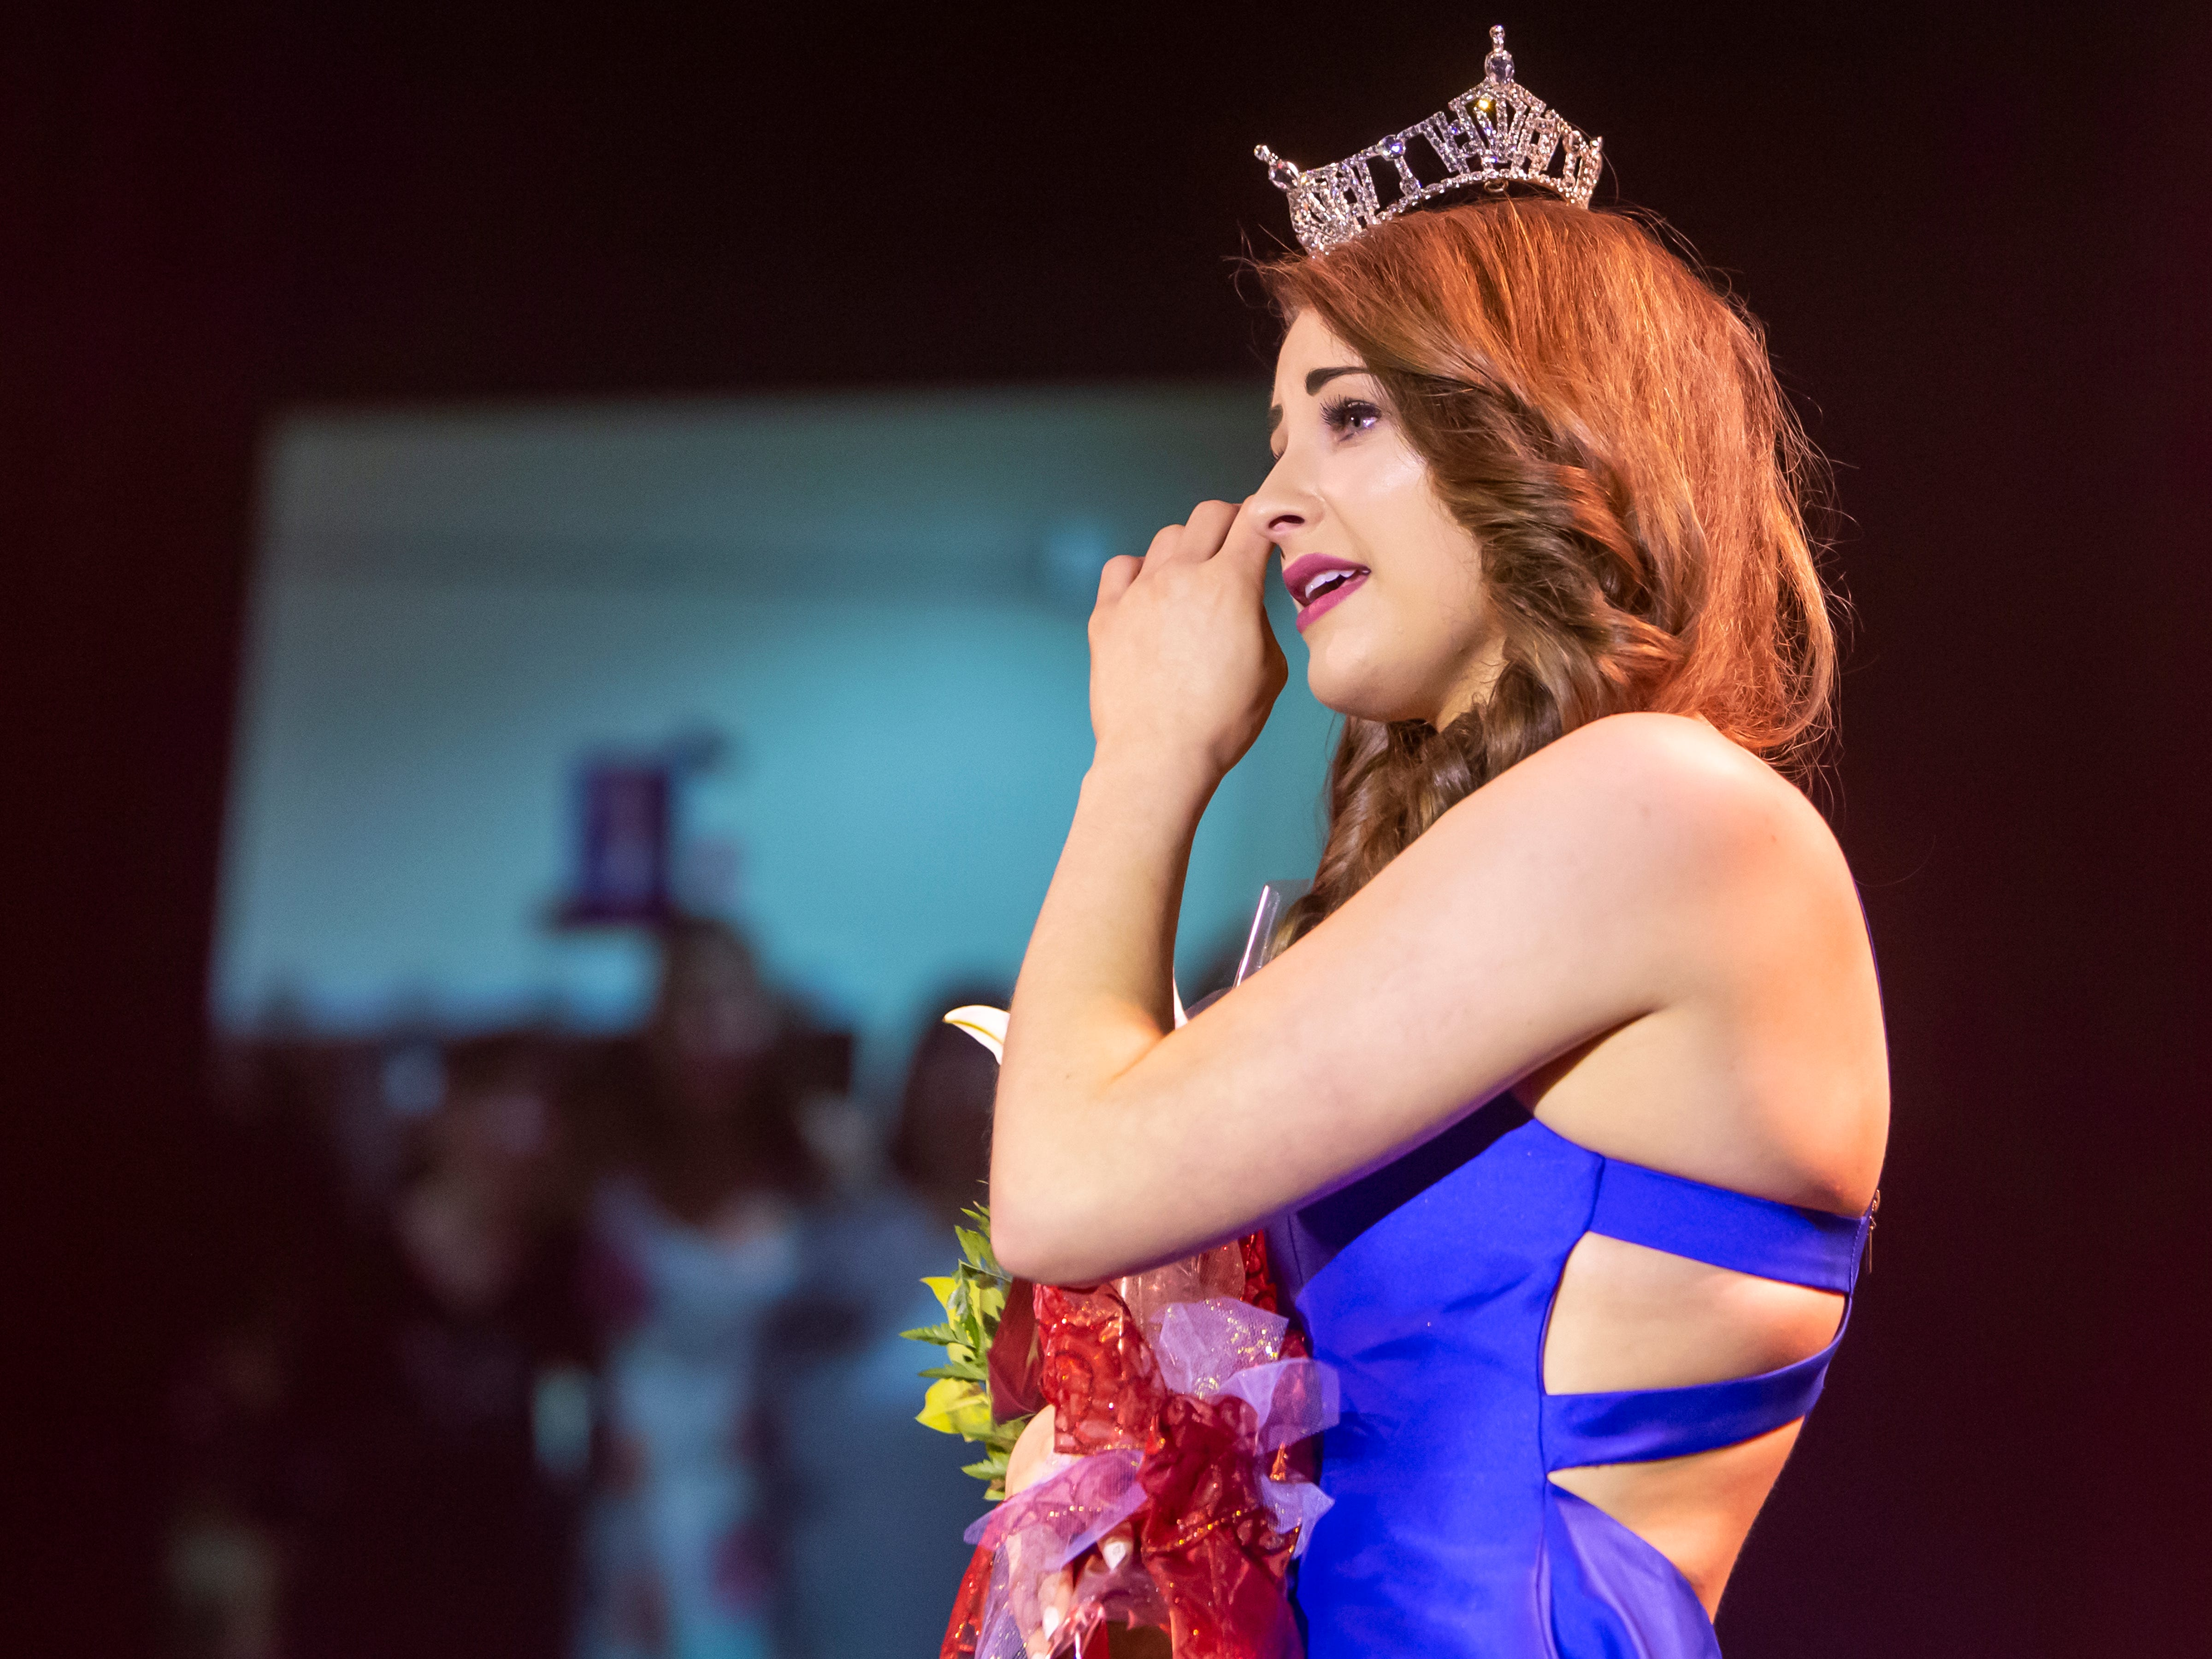 Miss Oshkosh 2018 Kate Lidtke wipes away tears during her farewell during the Miss Oshkosh Scholarship Pageant Saturday, March 2, 2019, at Alberta Kimball Auditorium in Oshkosh, Wis.